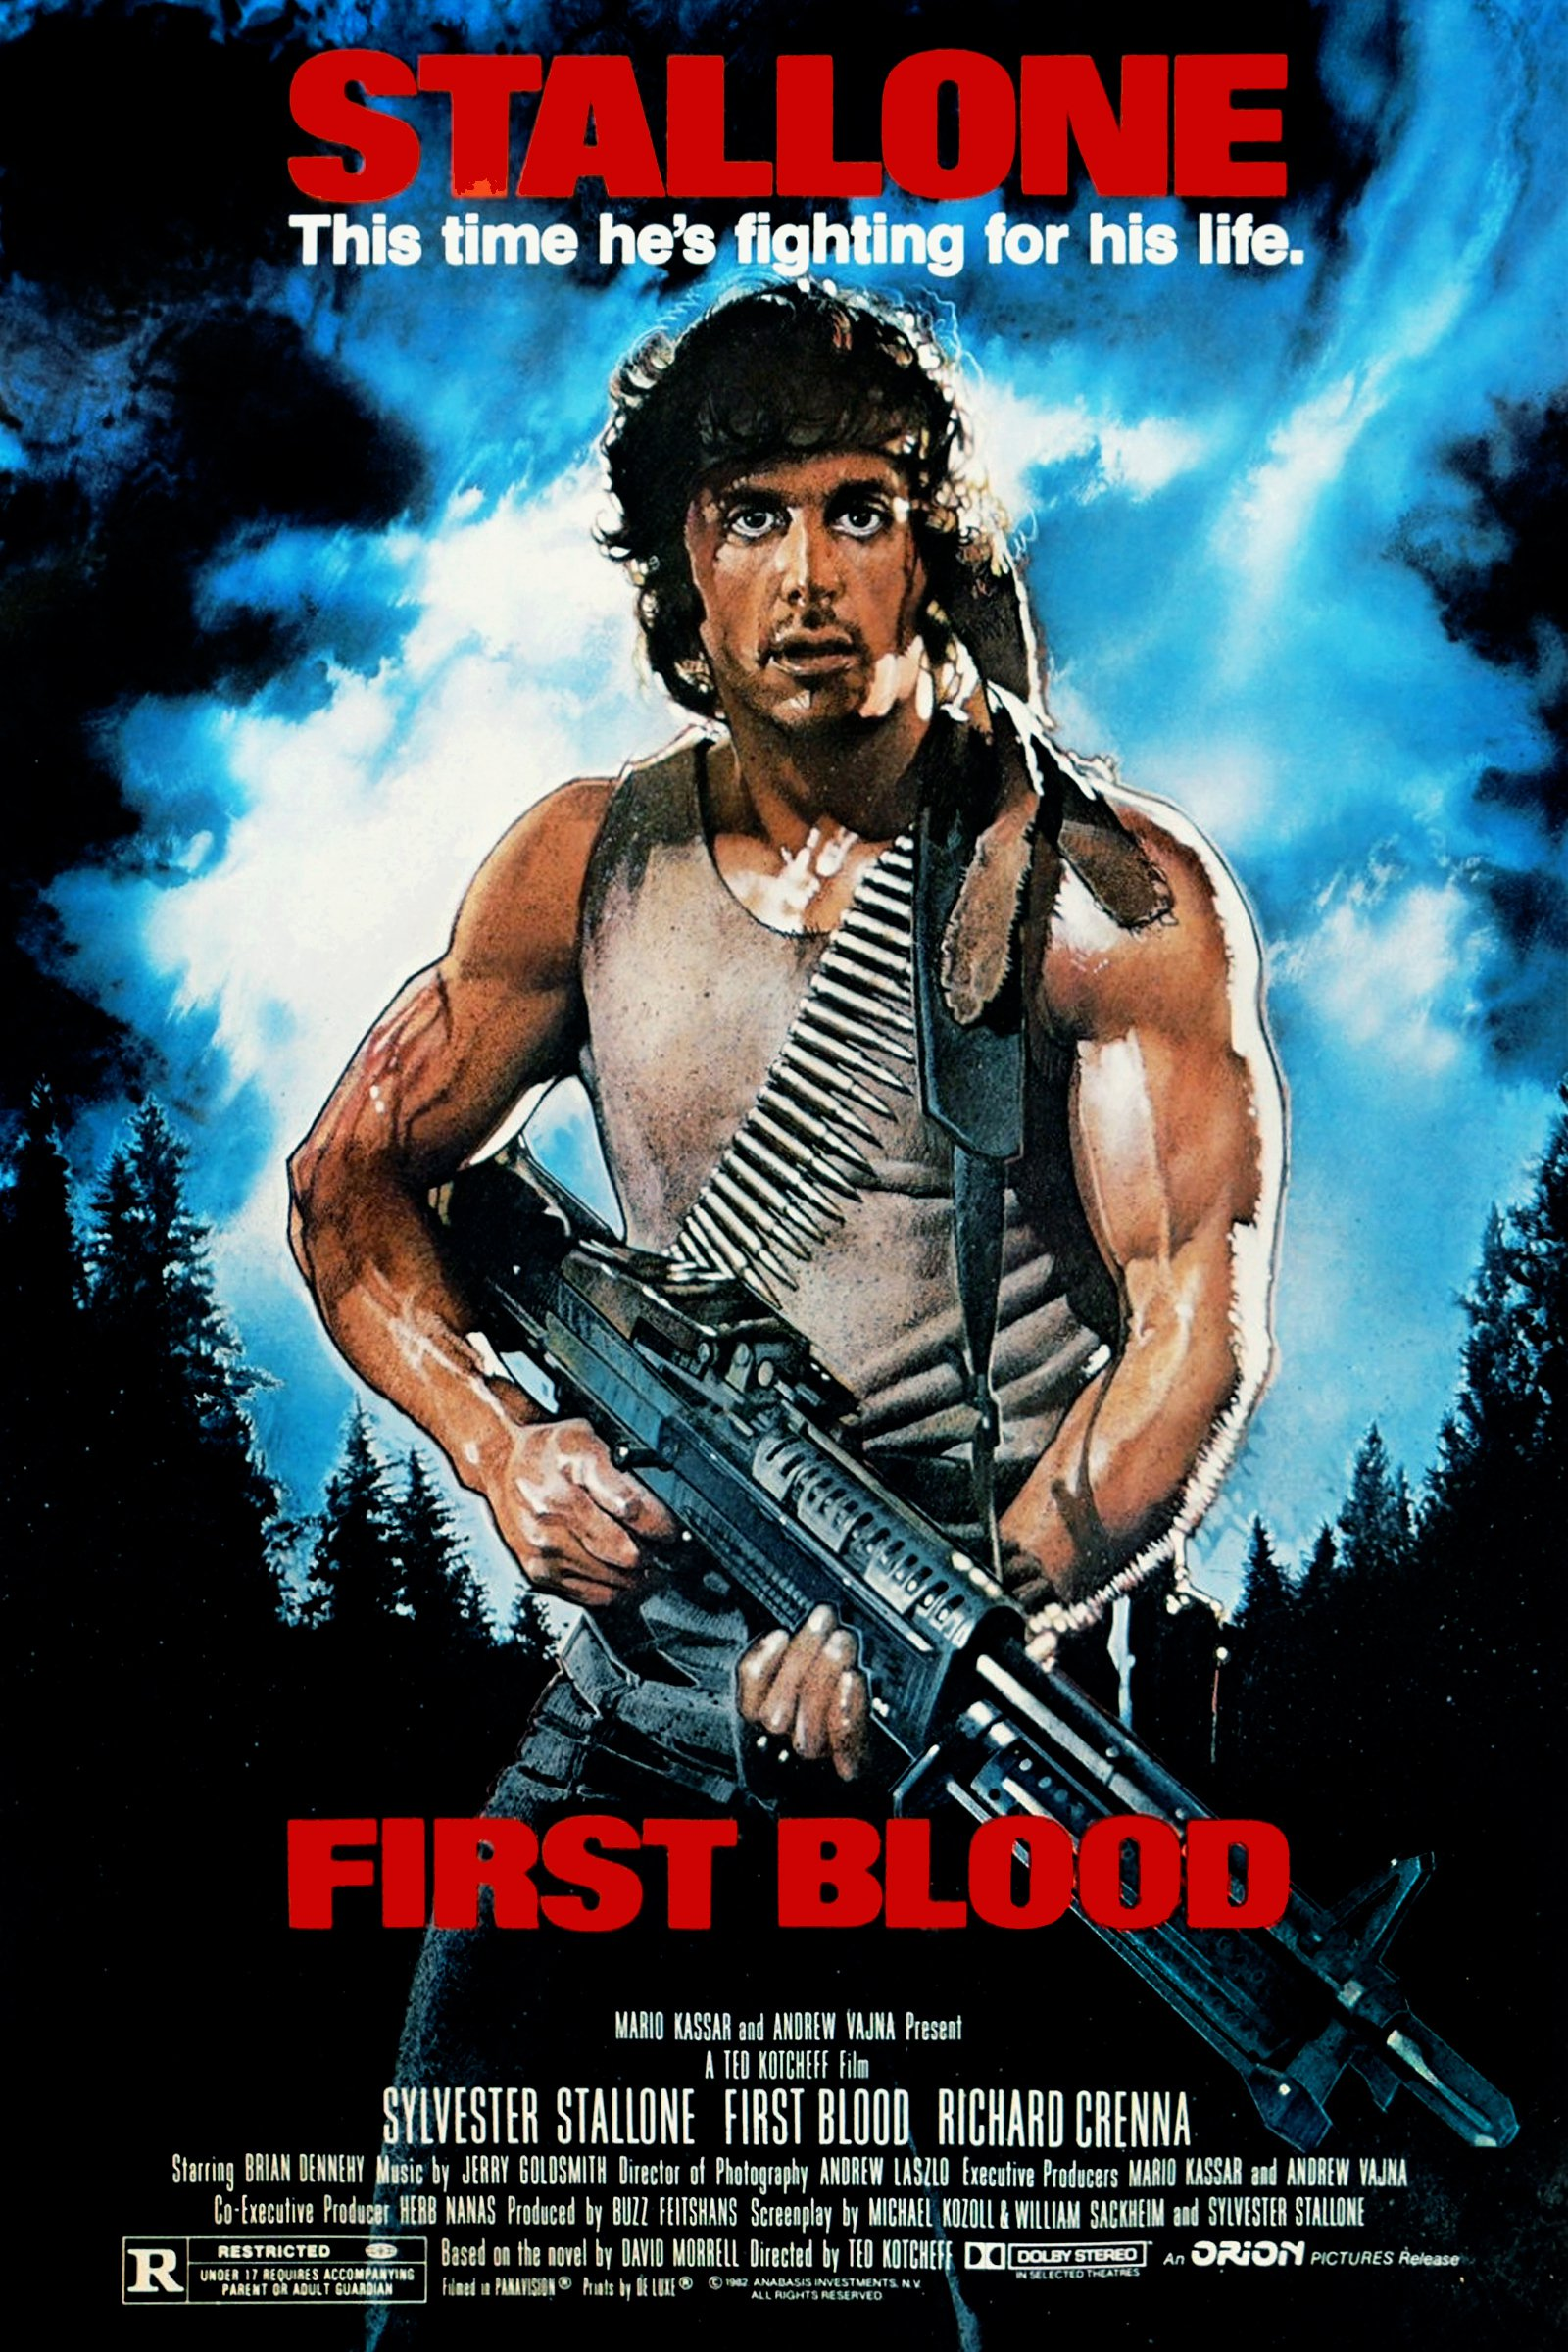 First Blood poster